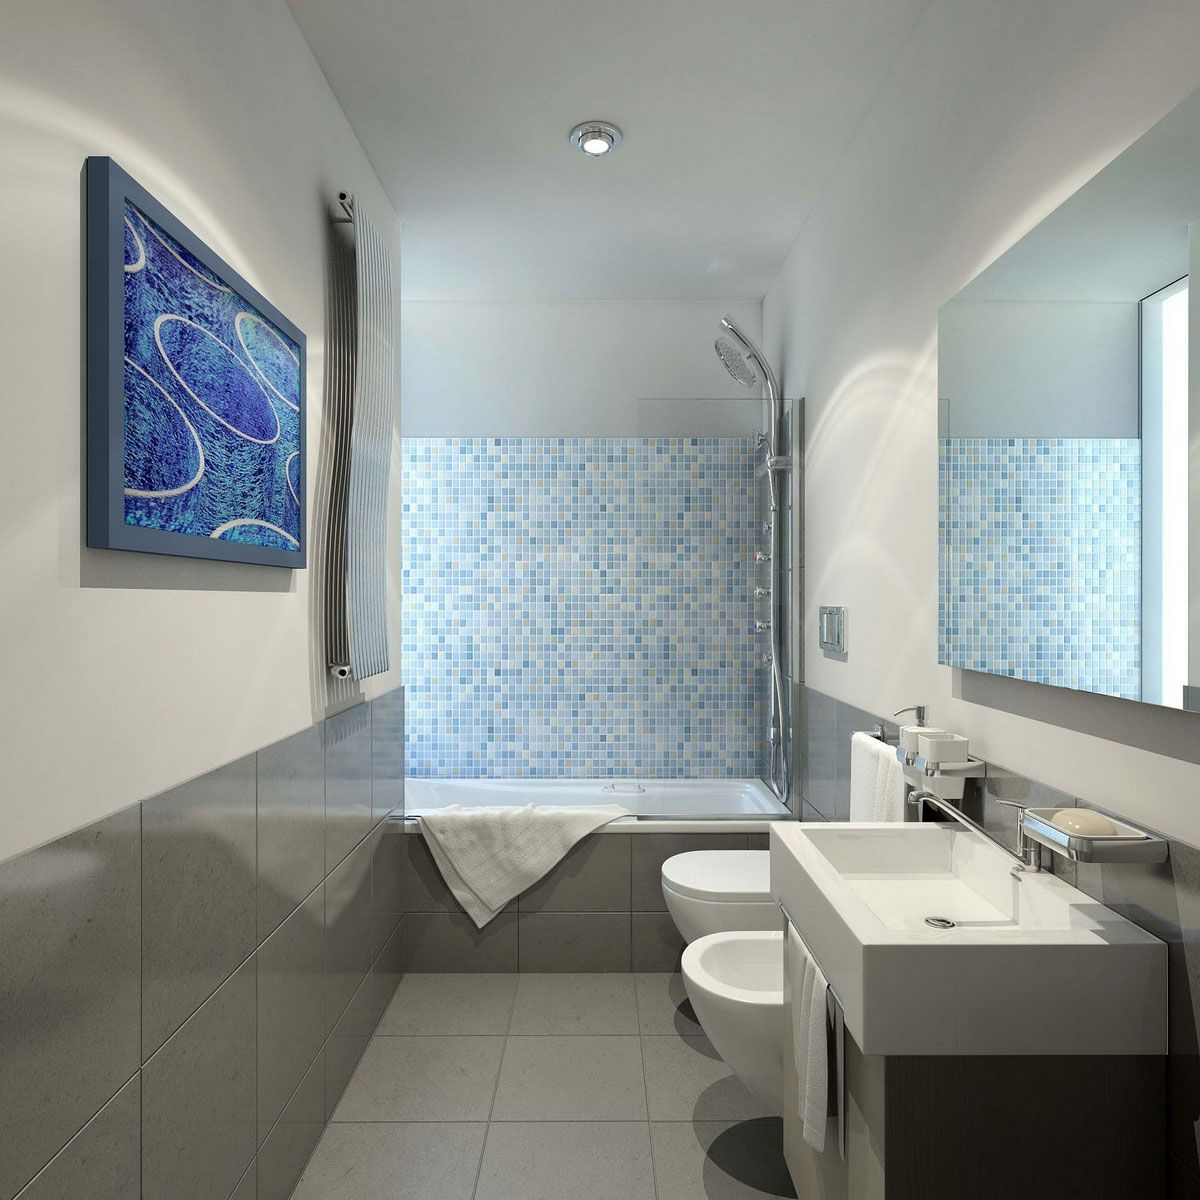 Modern blue and white bathroom - Bathroom Minimalist Blue Mosaic Tiles With Elegant Modern White Urinoir Also Toilet And Square Washbasin Excellent